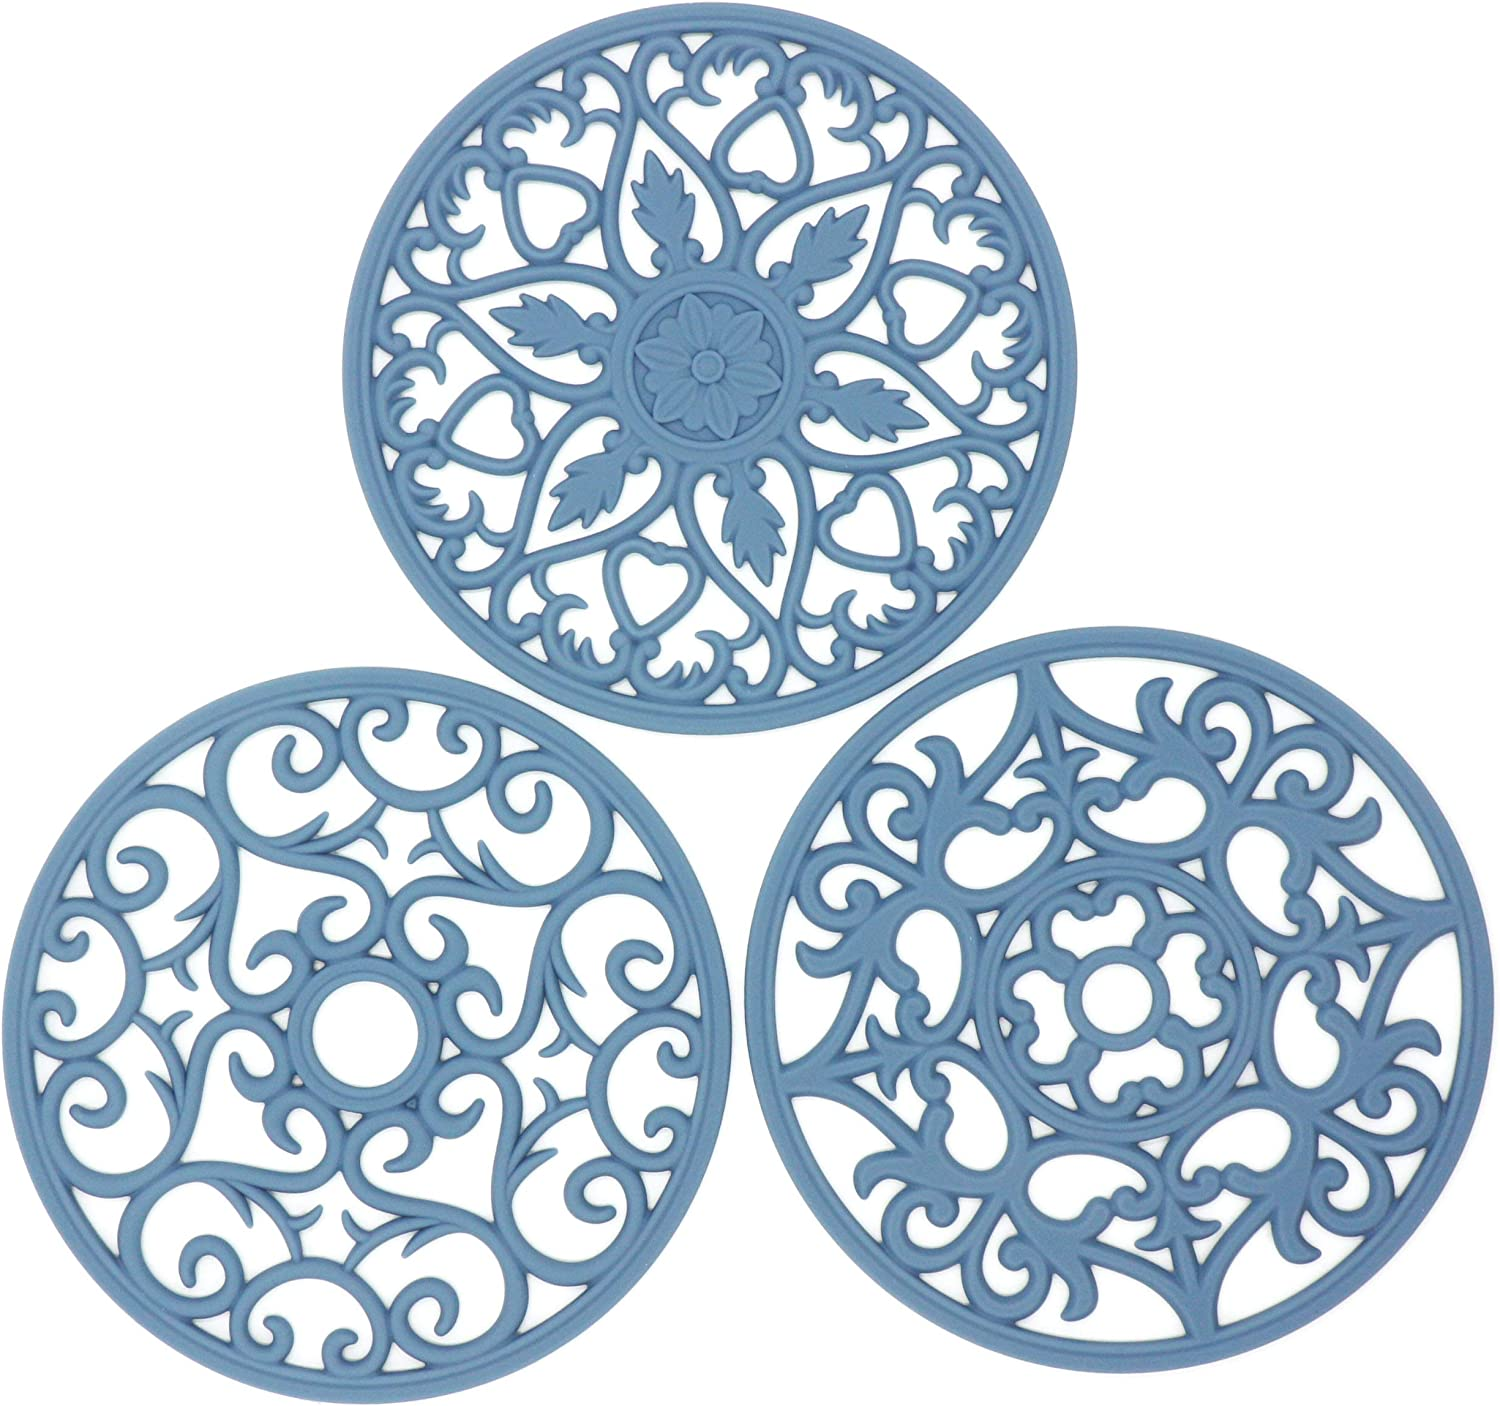 Smithcraft Blue Silicone Trivets for Hot Dishes, Pot Holder for Pots and Pans,Heat Pads for Kitchen Counter,Hot Mats,Multi-Use Intricately Carved, Flexible, Non-Slip, Pack 3